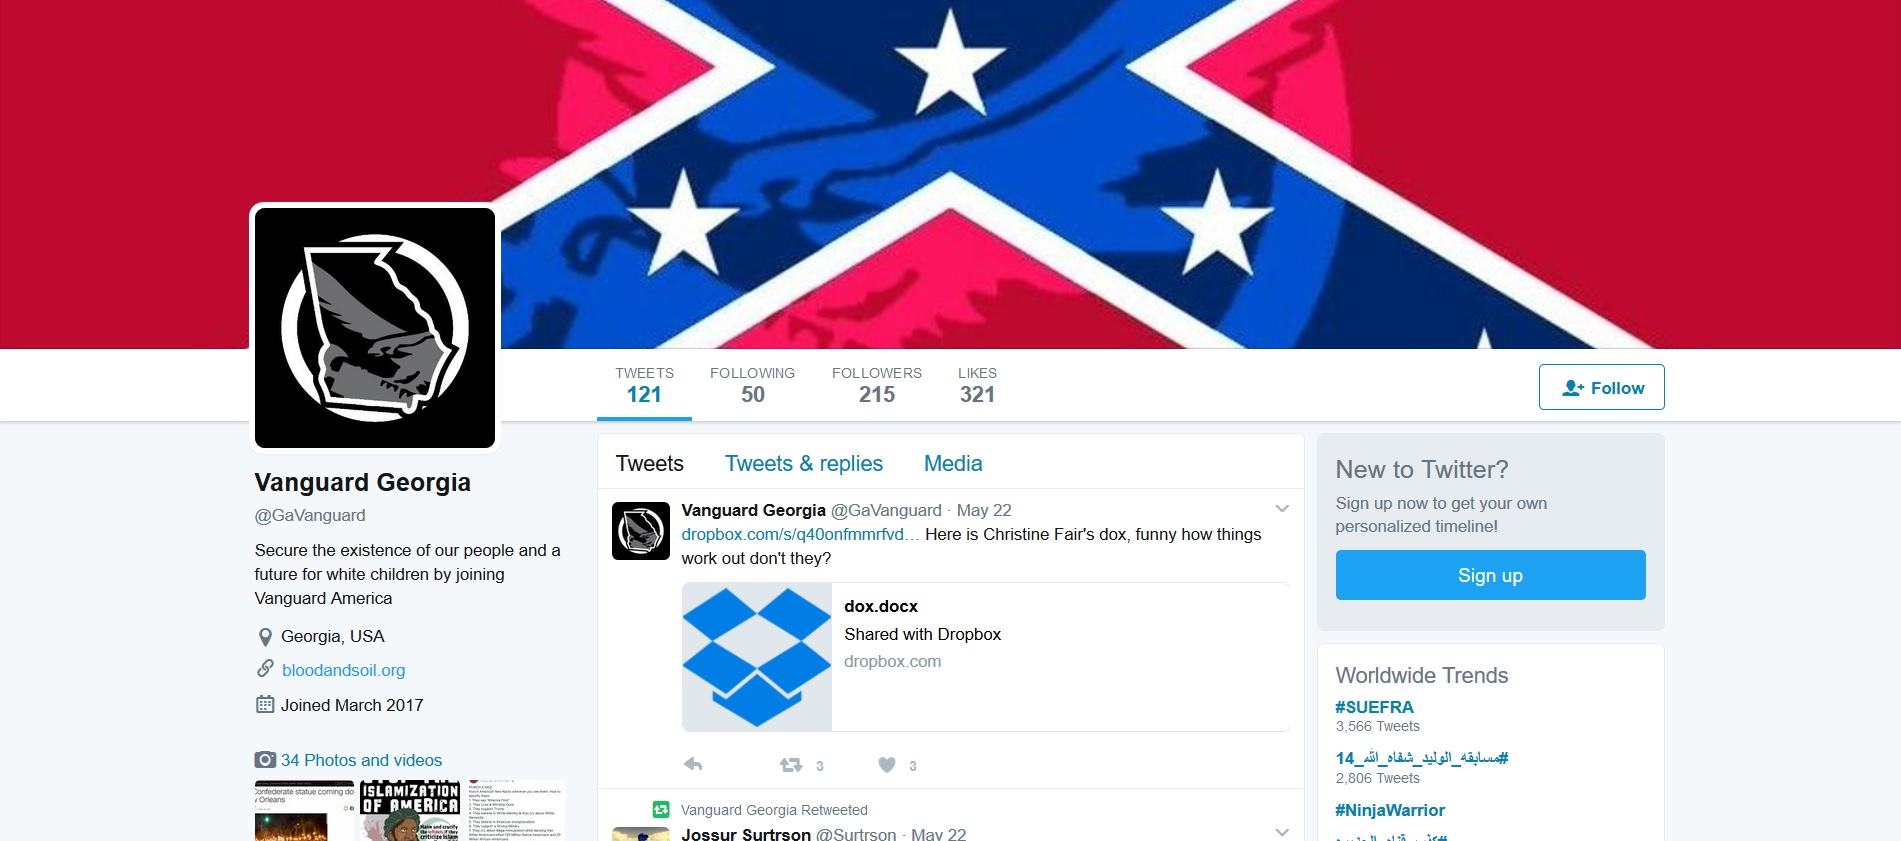 vanguard georgia twitter screencap 2017